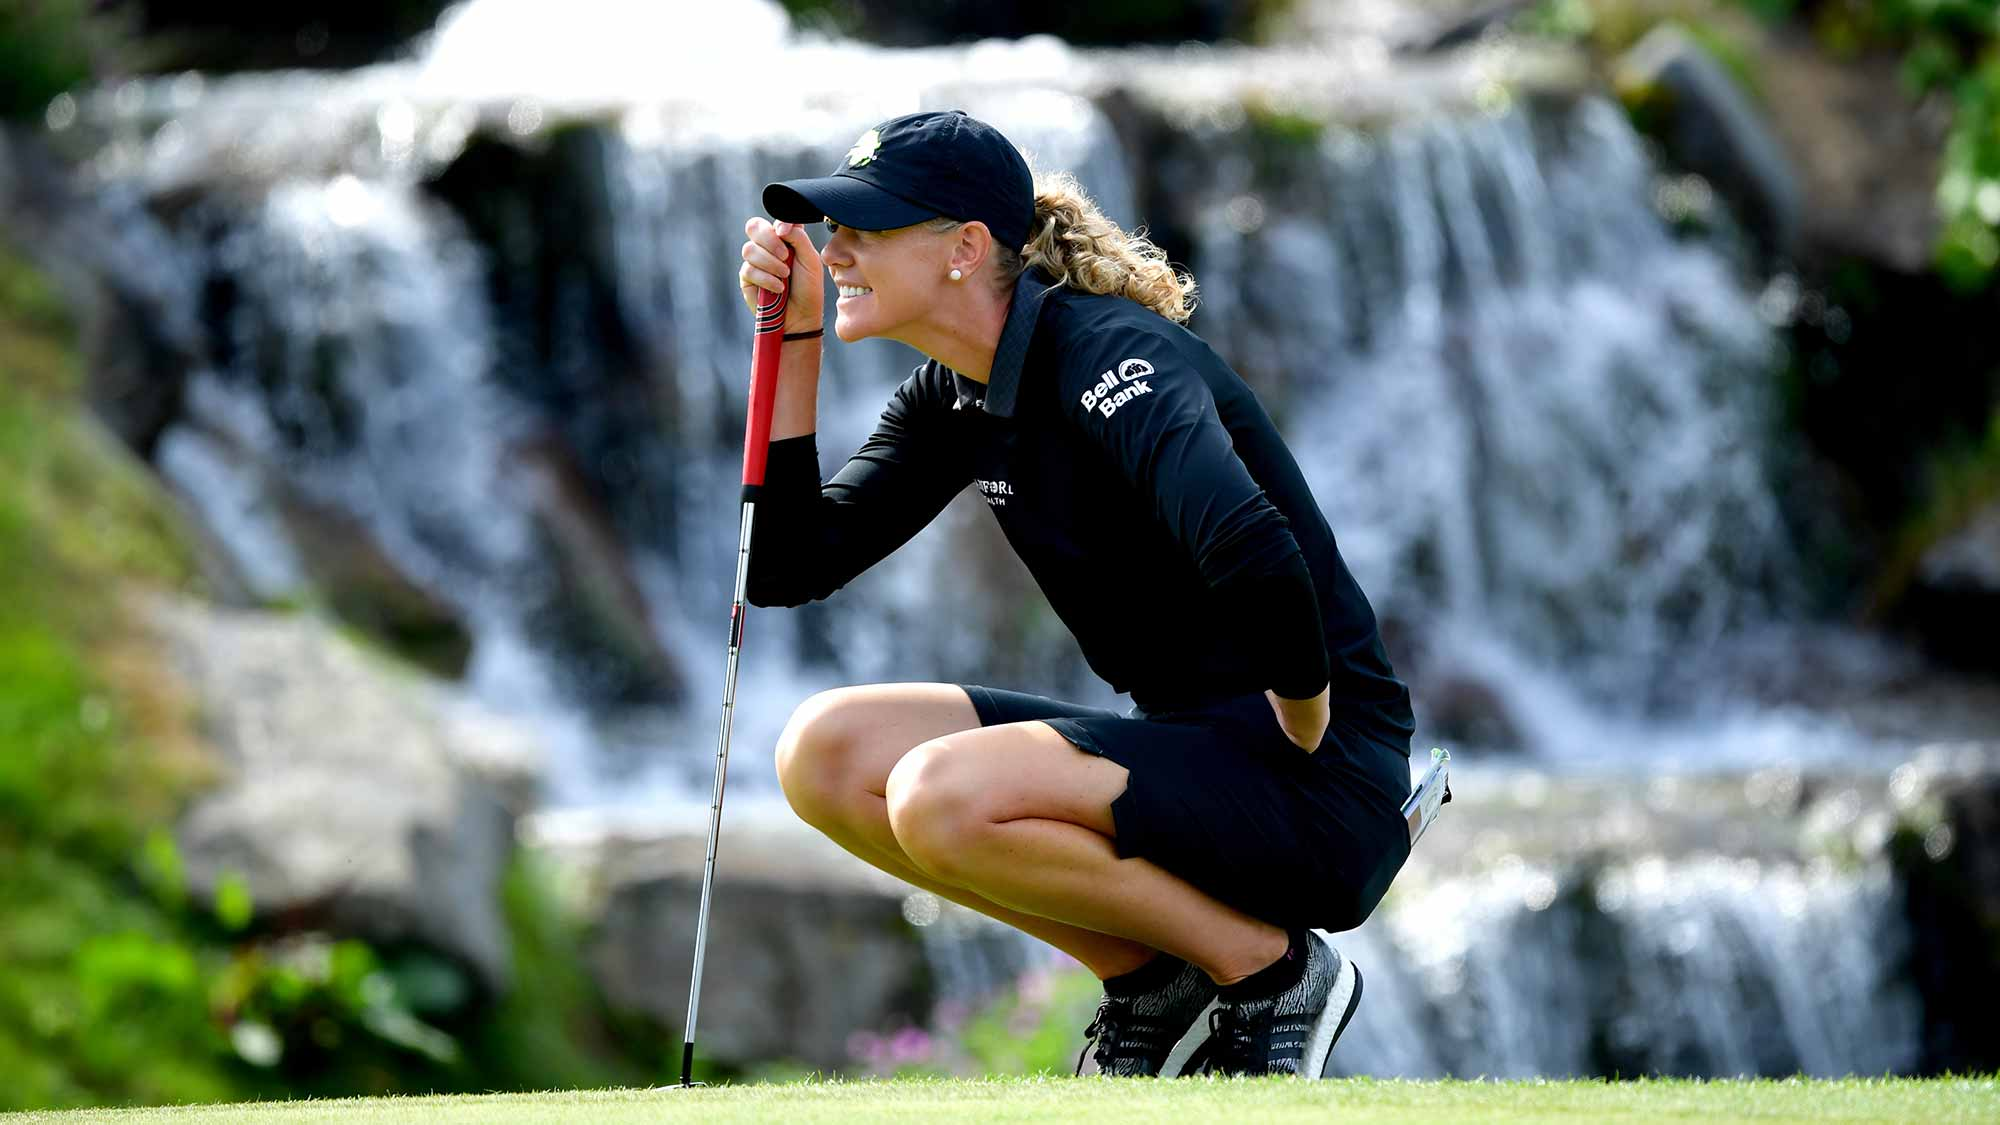 Amy Olson of the United States lines up a putt during Day Four of The Evian Championship 2018 at Evian Resort Golf Club on September 16, 2018 in Evian-les-Bains, France